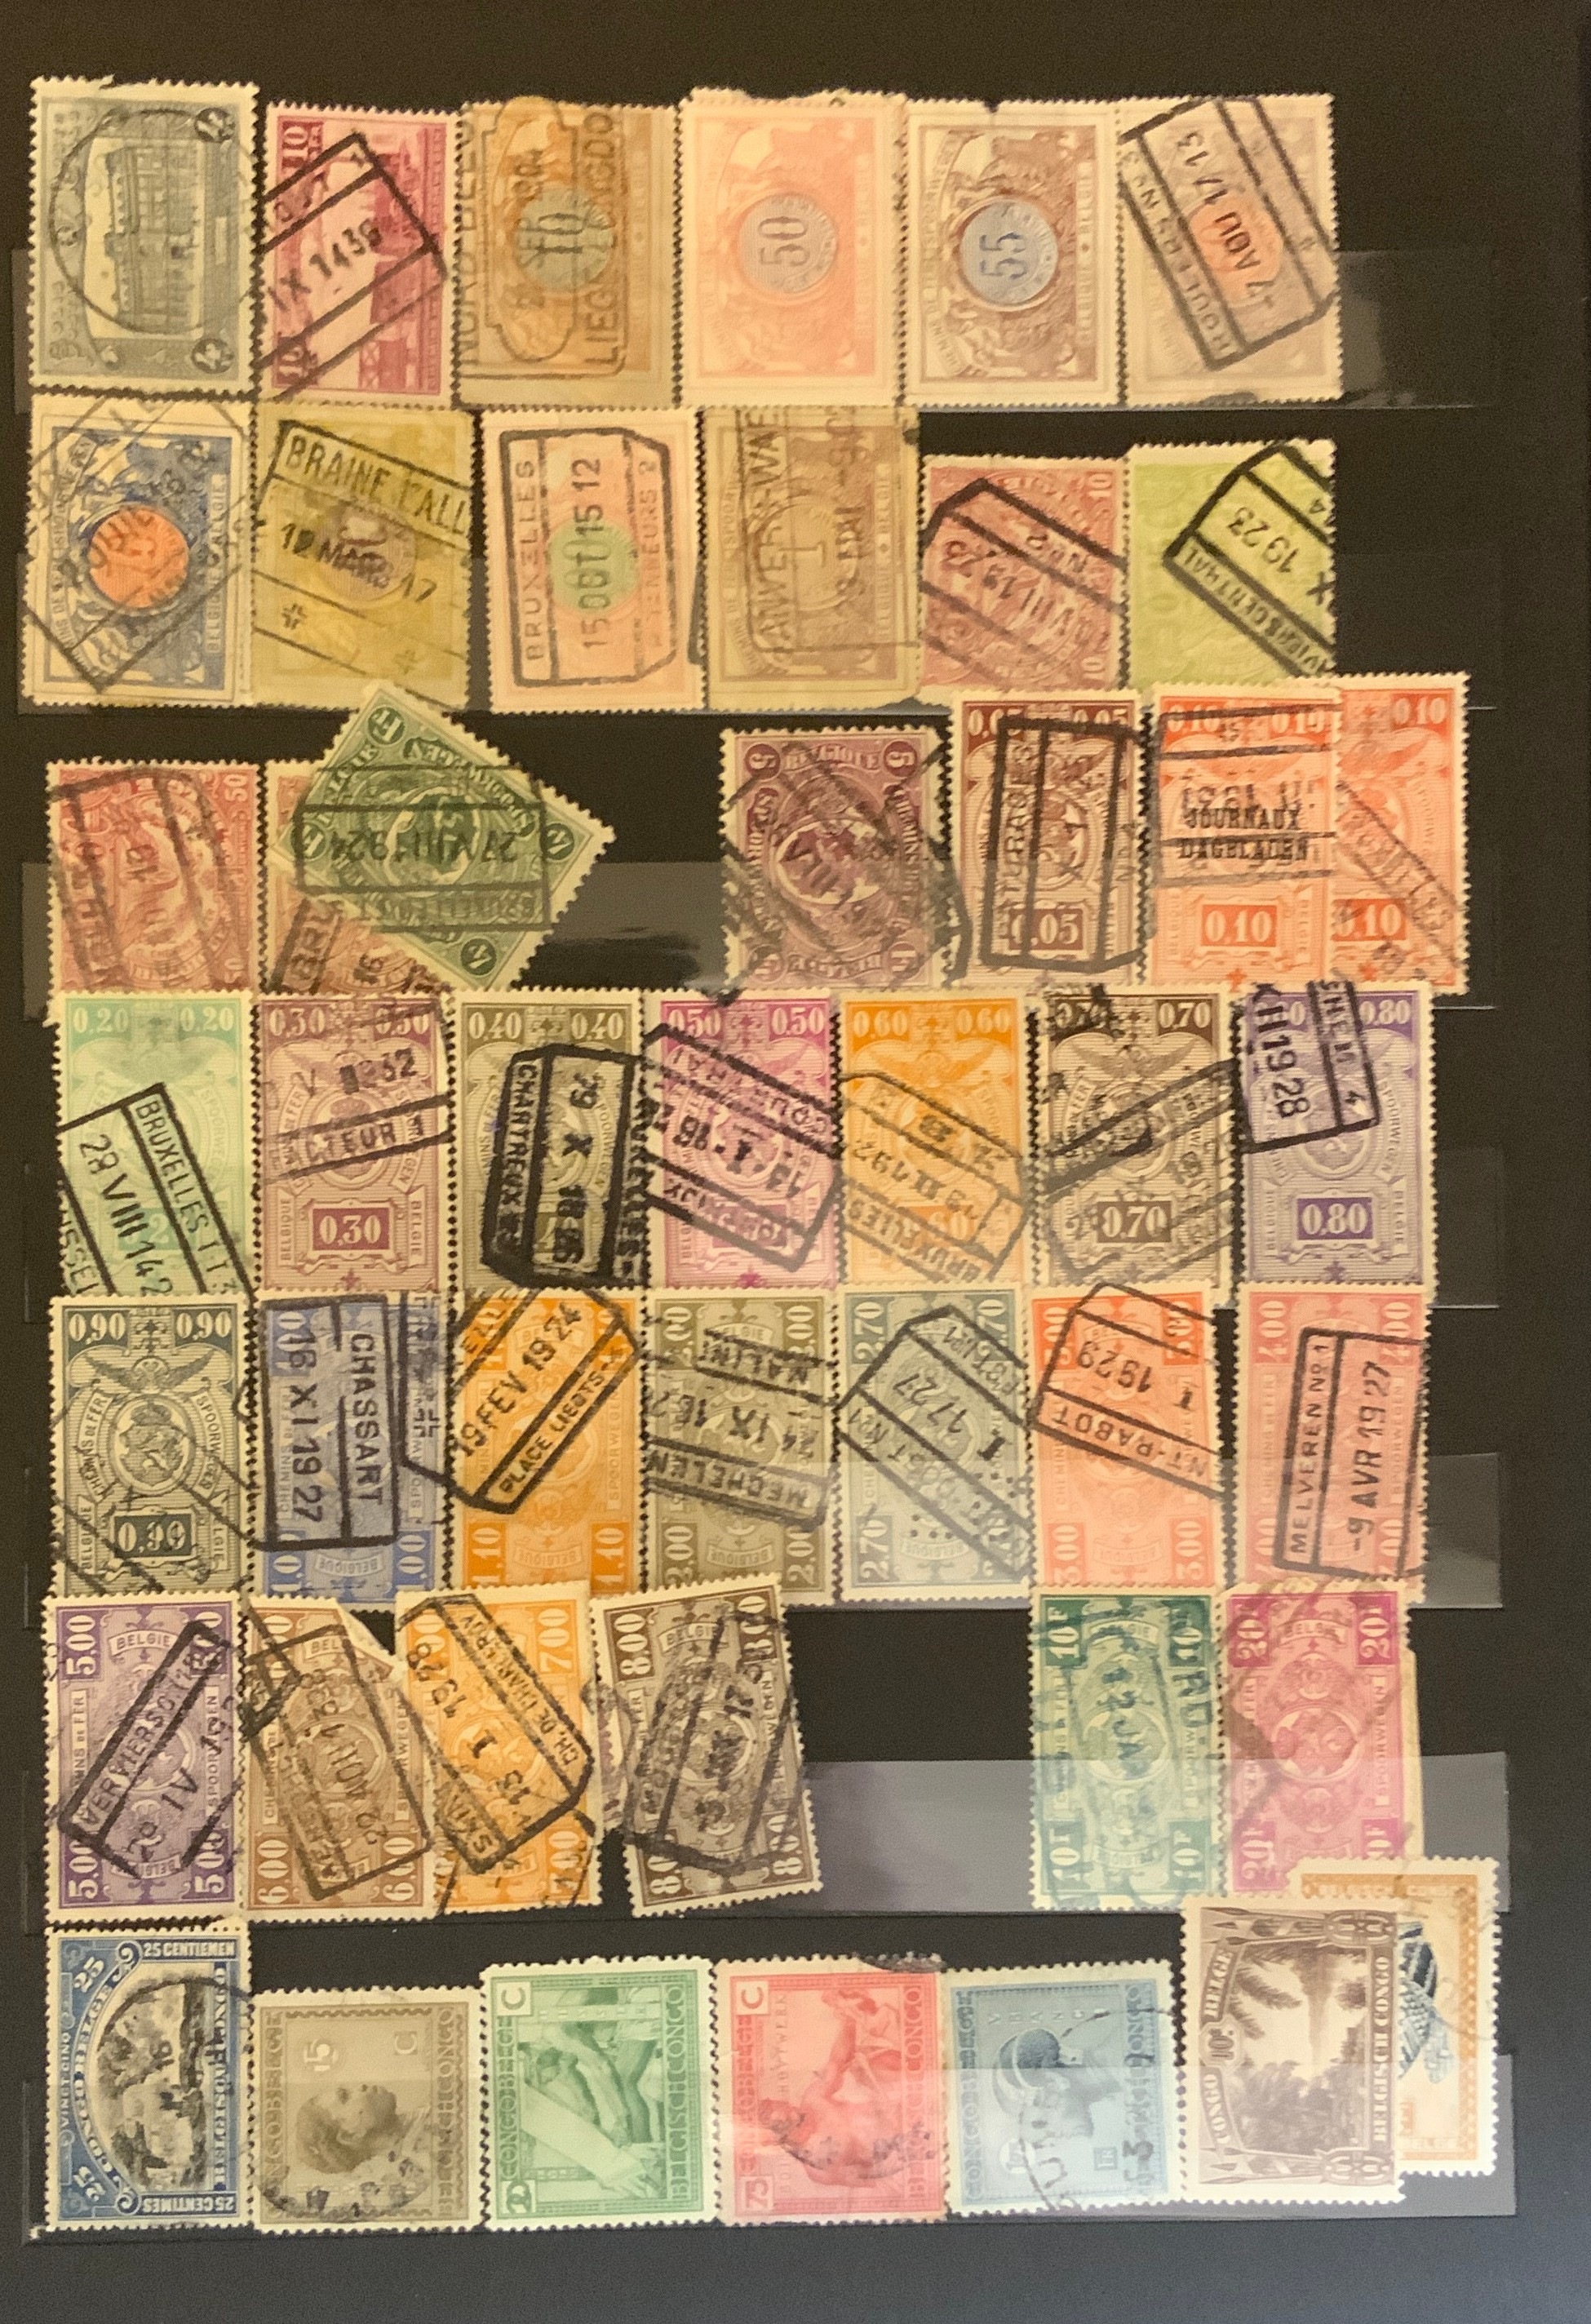 STOCKBOOK WITH STAMPS FROM VARIOUS COUNTRIES INCLUDING AUSTRIA, BELGIUM, FRANCE - Image 8 of 16